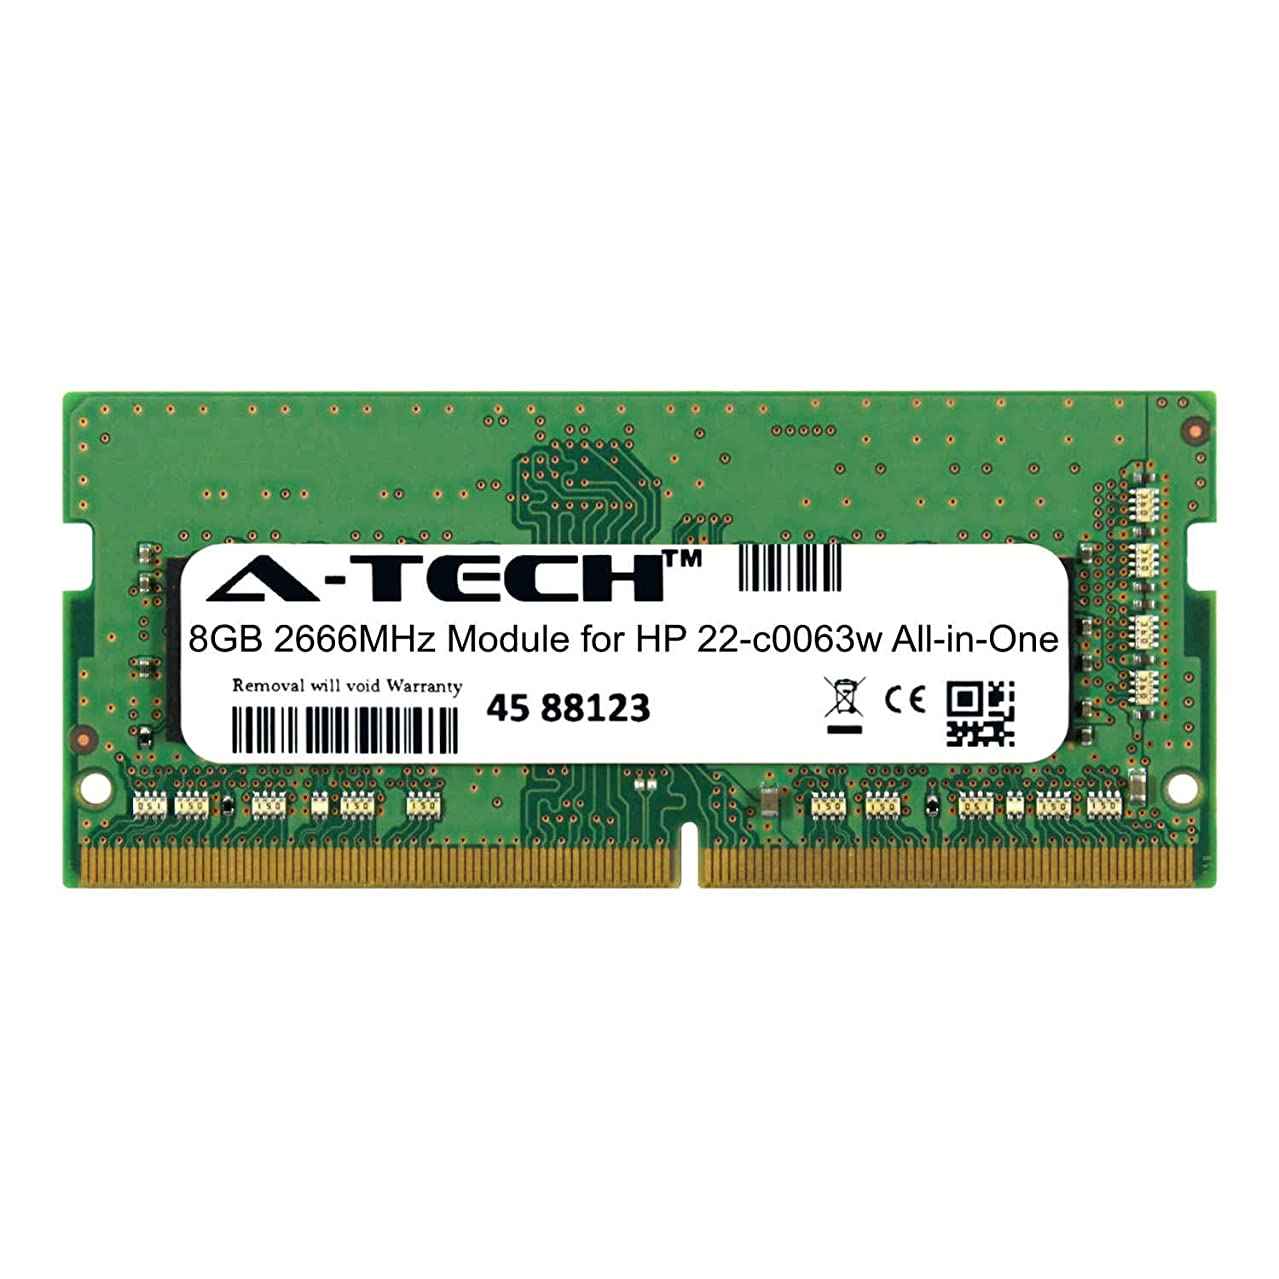 A-Tech 8GB Module for HP 22-c0063w All-in-One (AIO) Compatible DDR4 2666Mhz Memory Ram (ATMS275938A25978X1)